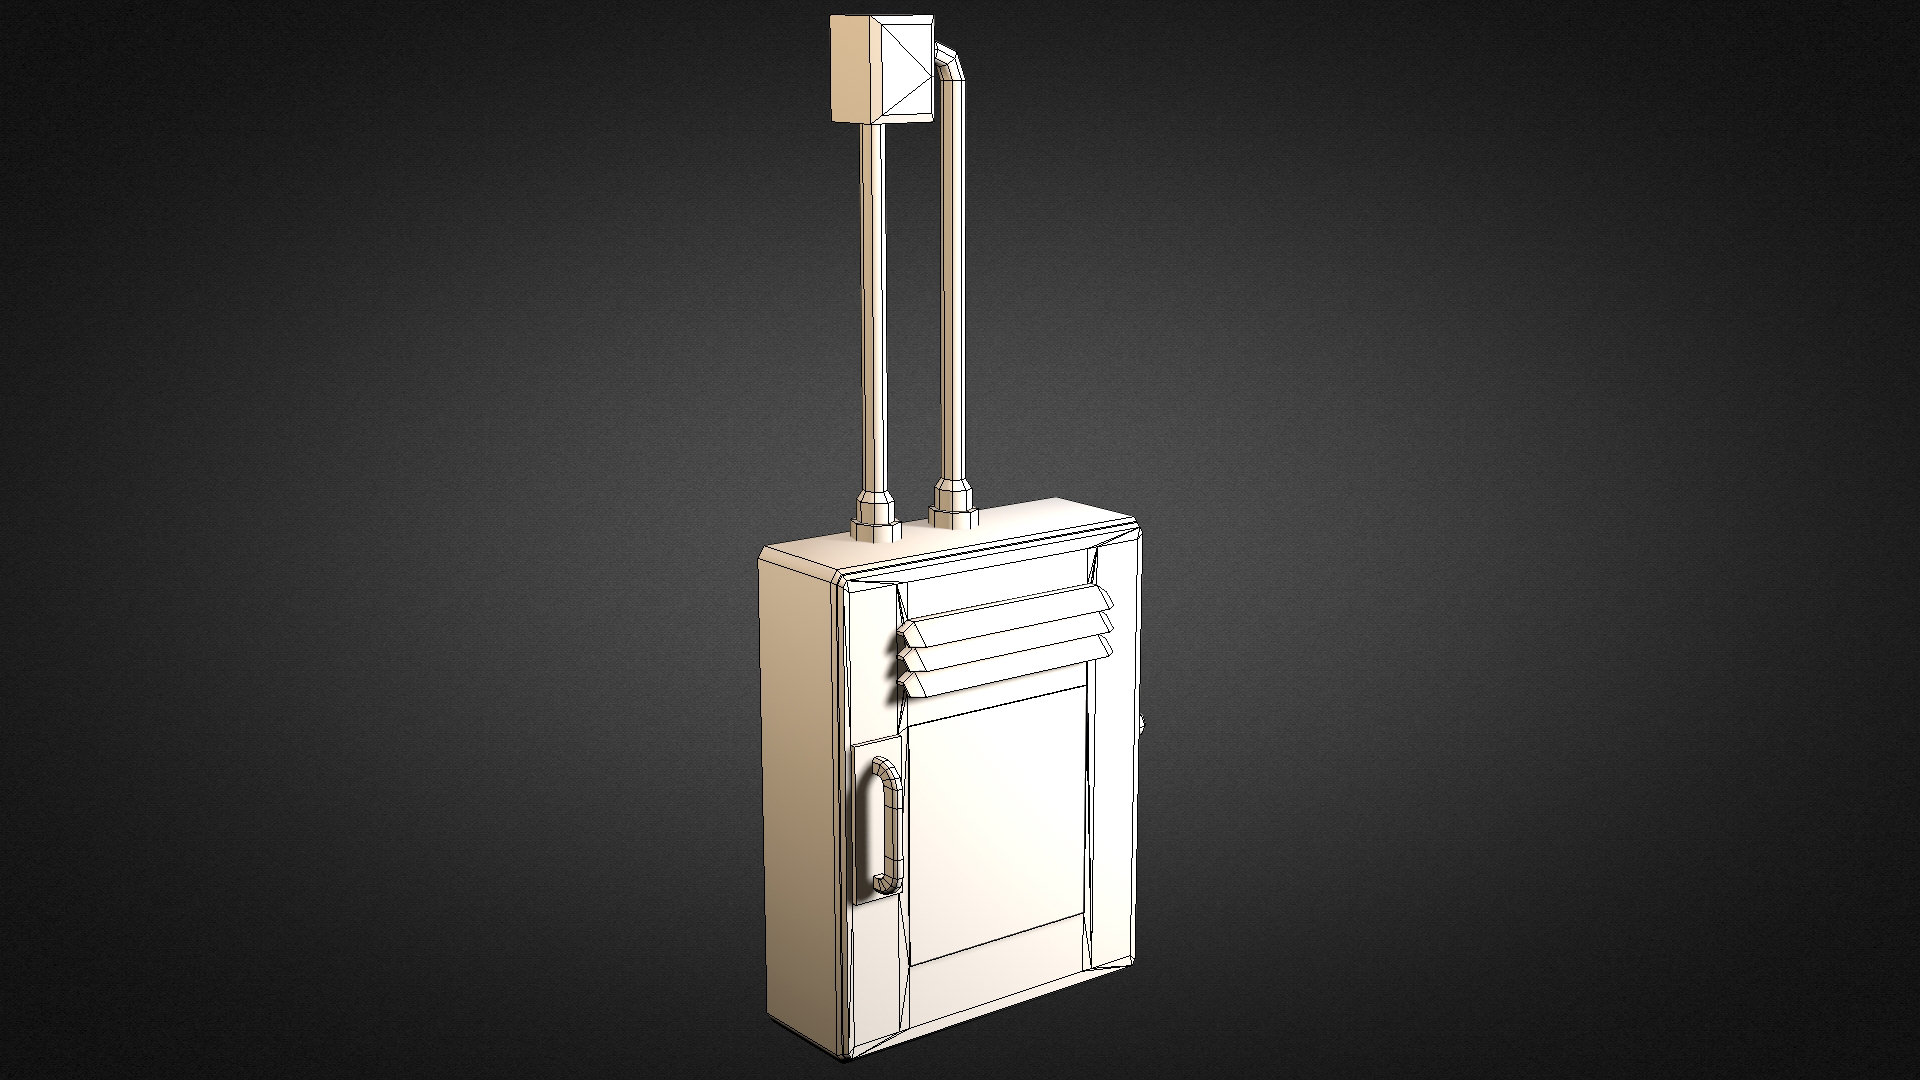 electric fuse box 01 3d asset cgtrader ryse game box electric fuse box 01 3d model low poly max obj mtl 3ds fbx dxf dwg